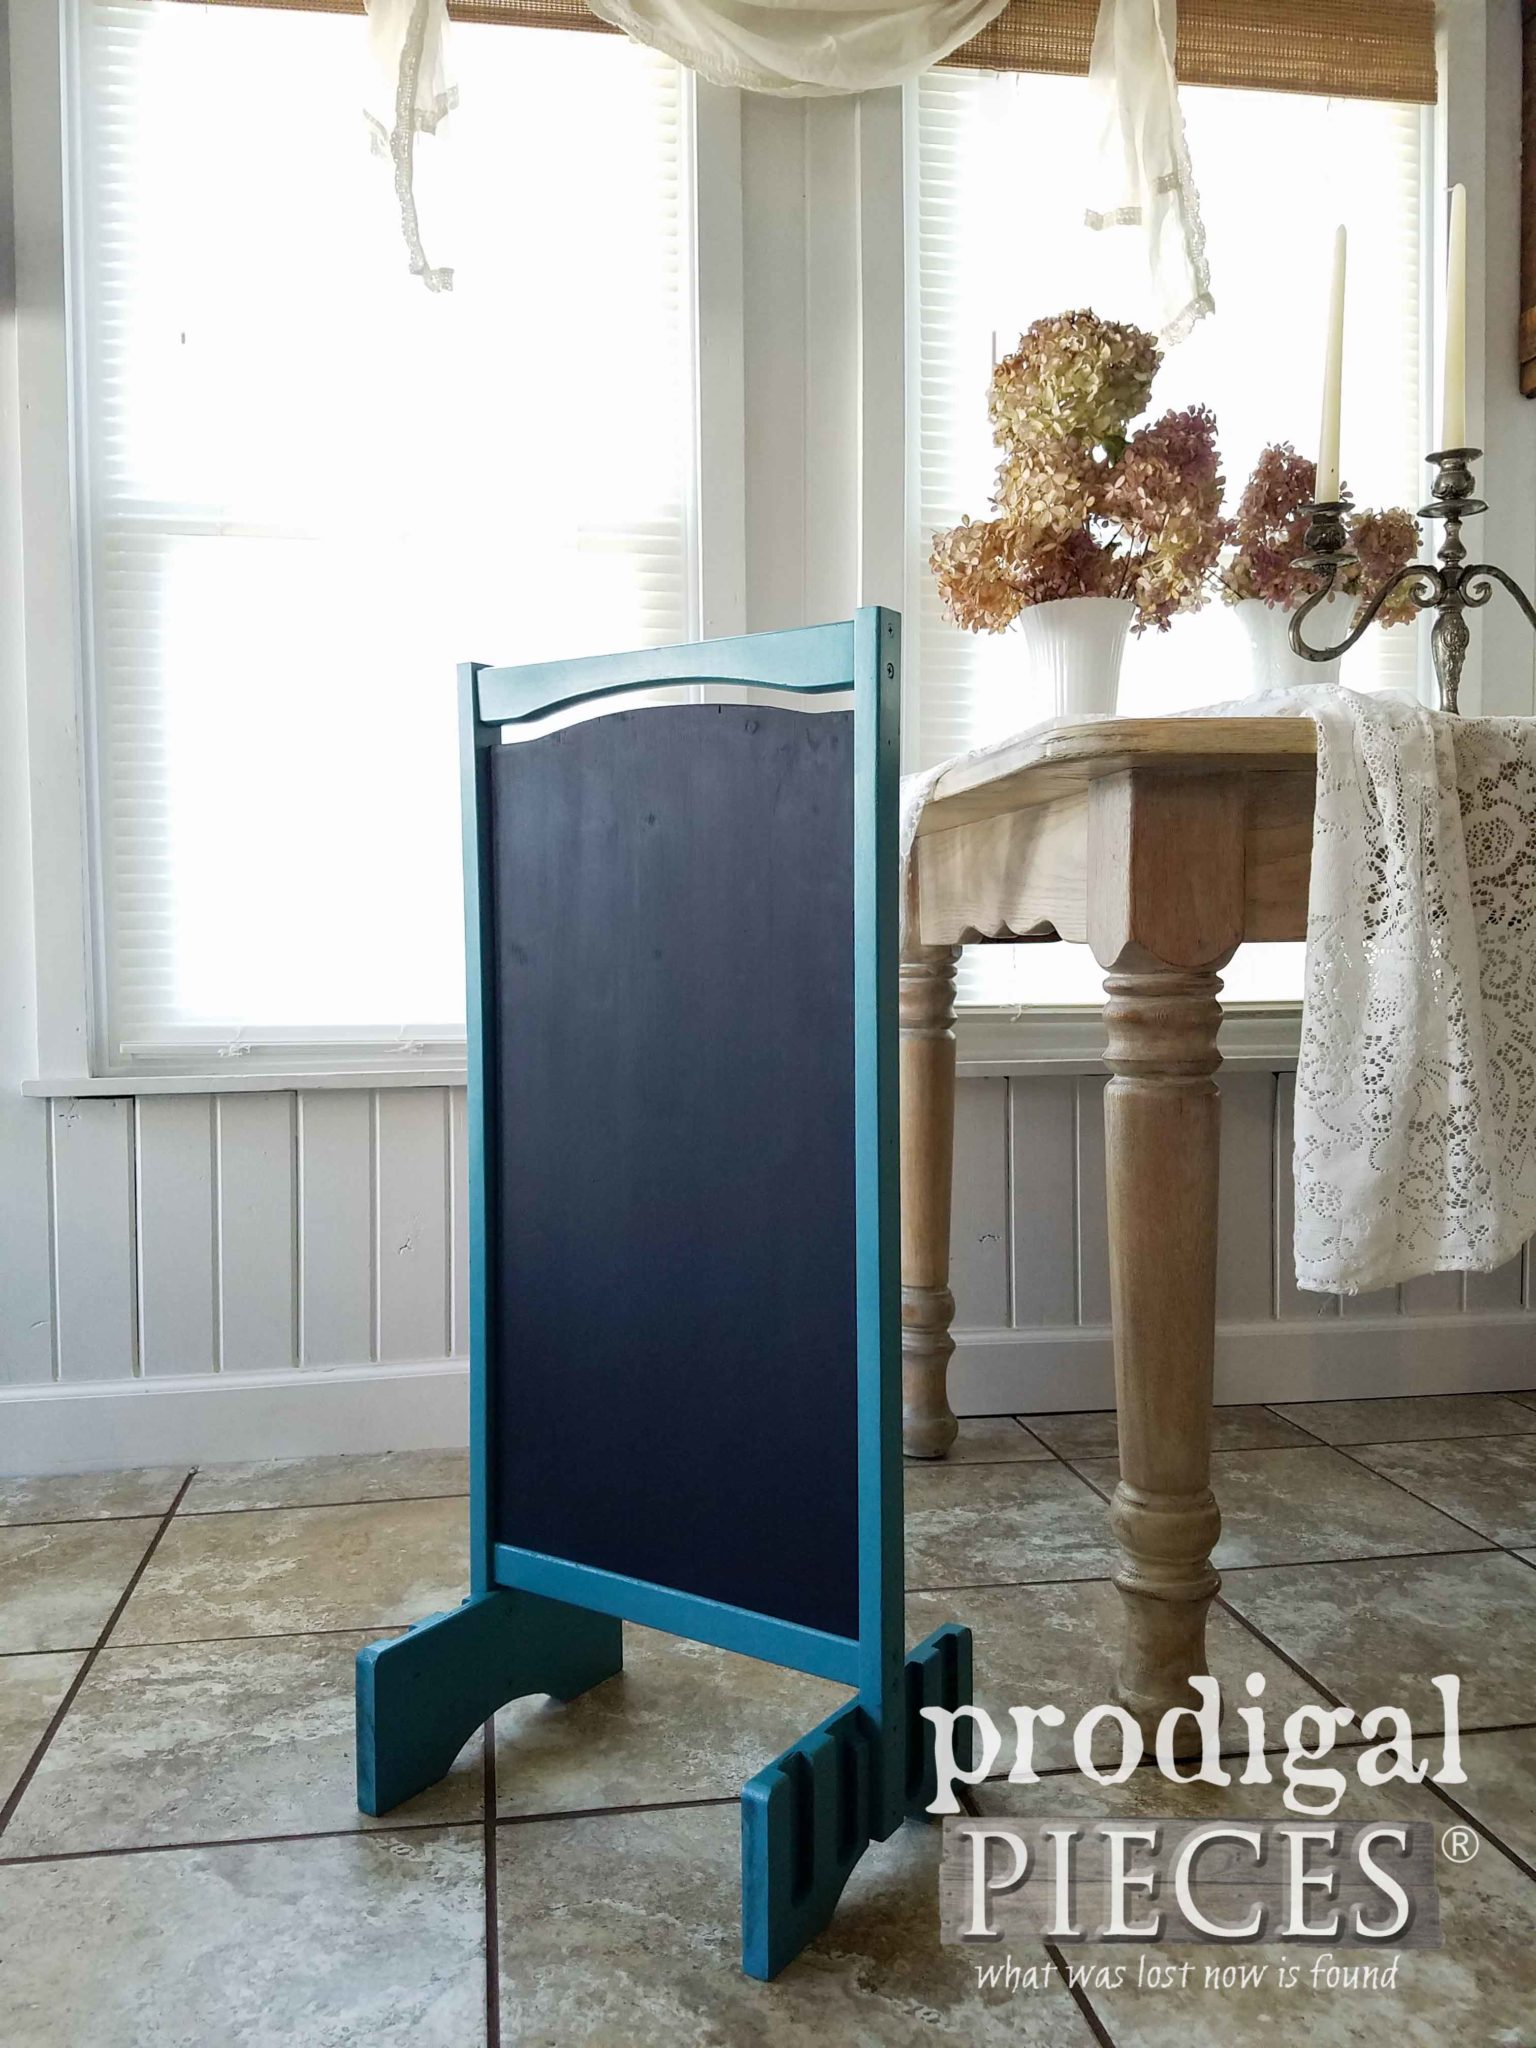 Upcycled DIY Chalkboard Sign for Any Occasion by Larissa of Prodigal Pieces | prodigalpieces.com